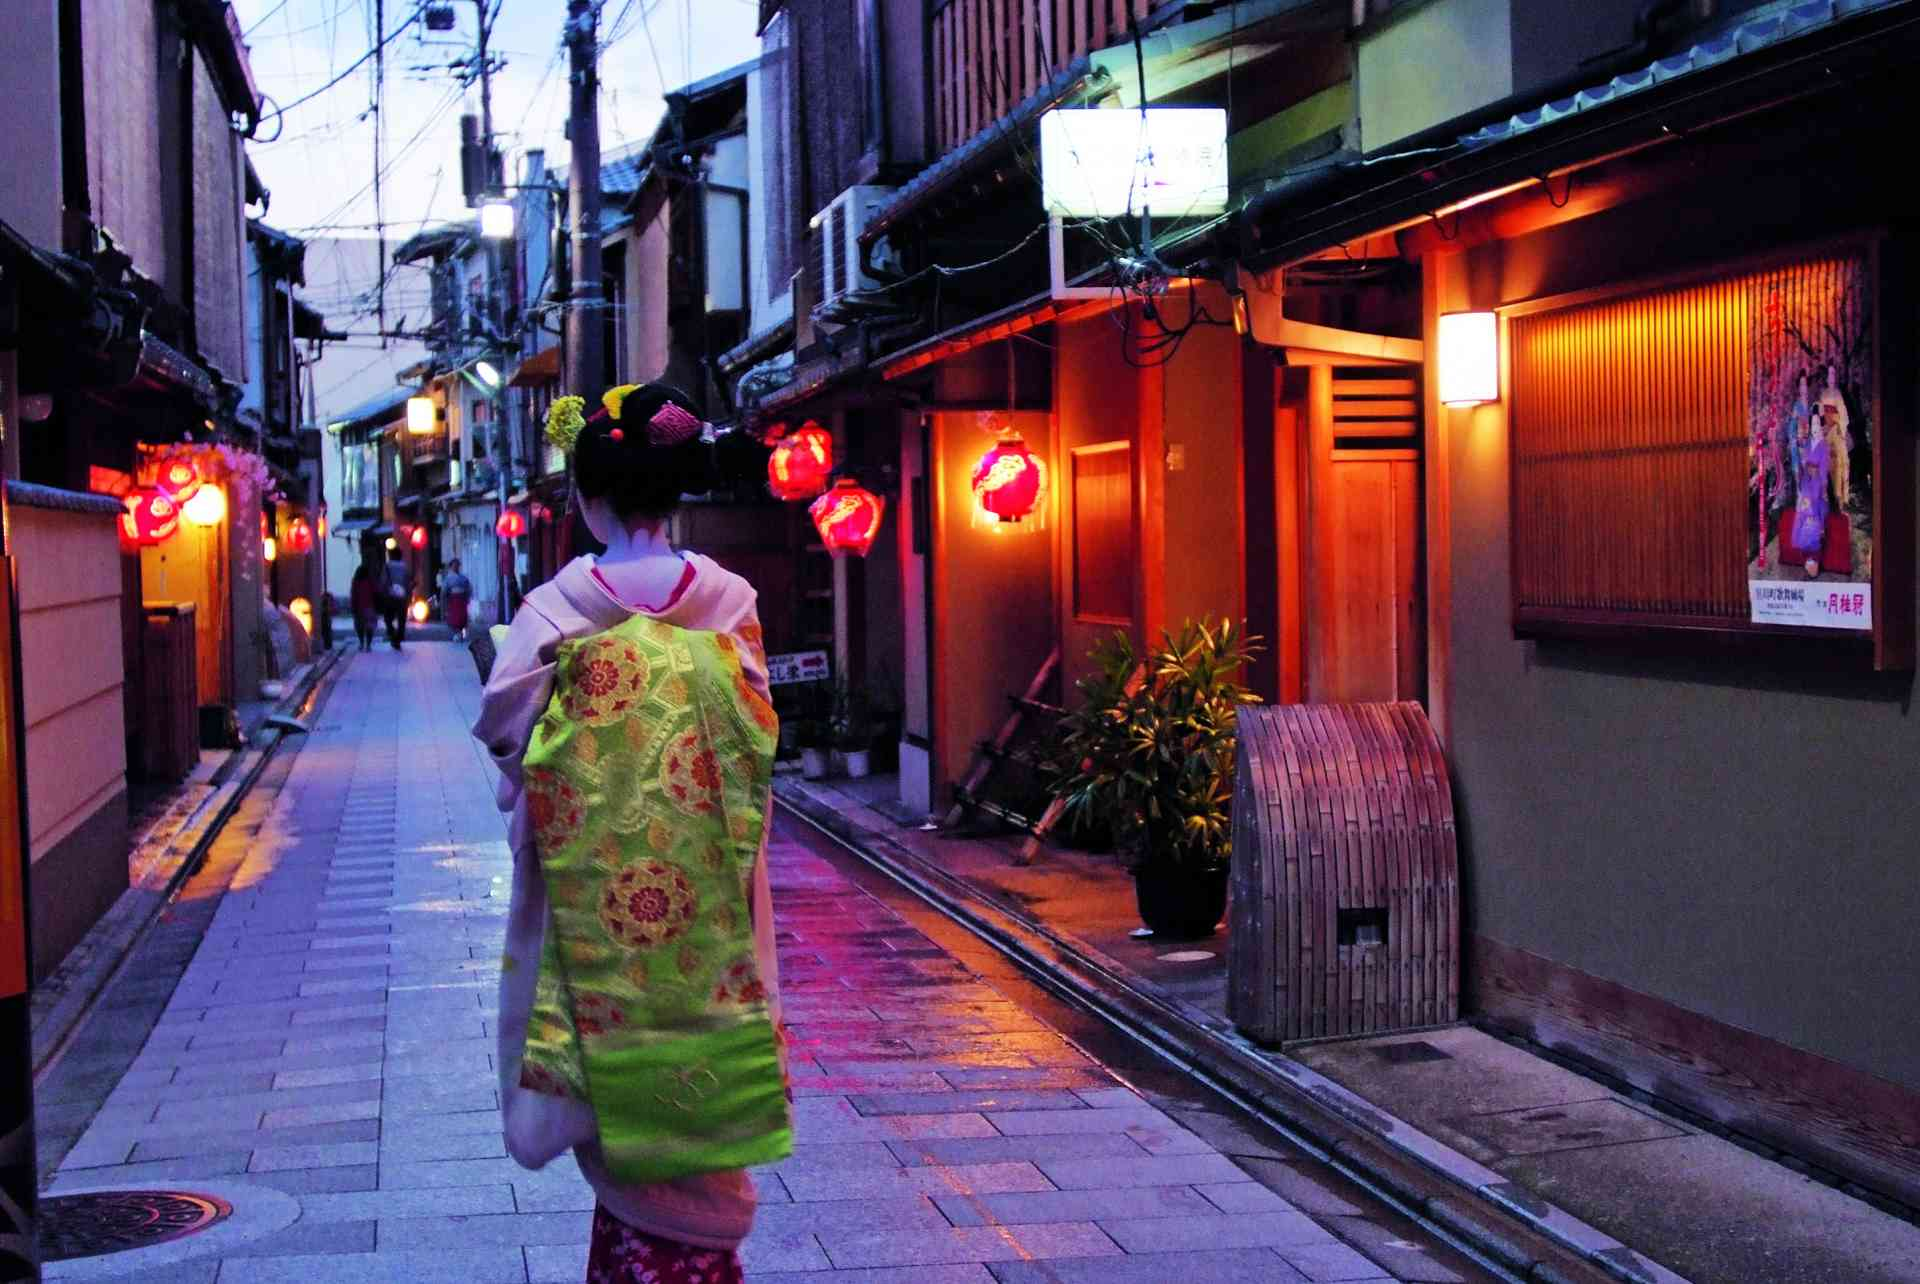 The history and heart of Japan